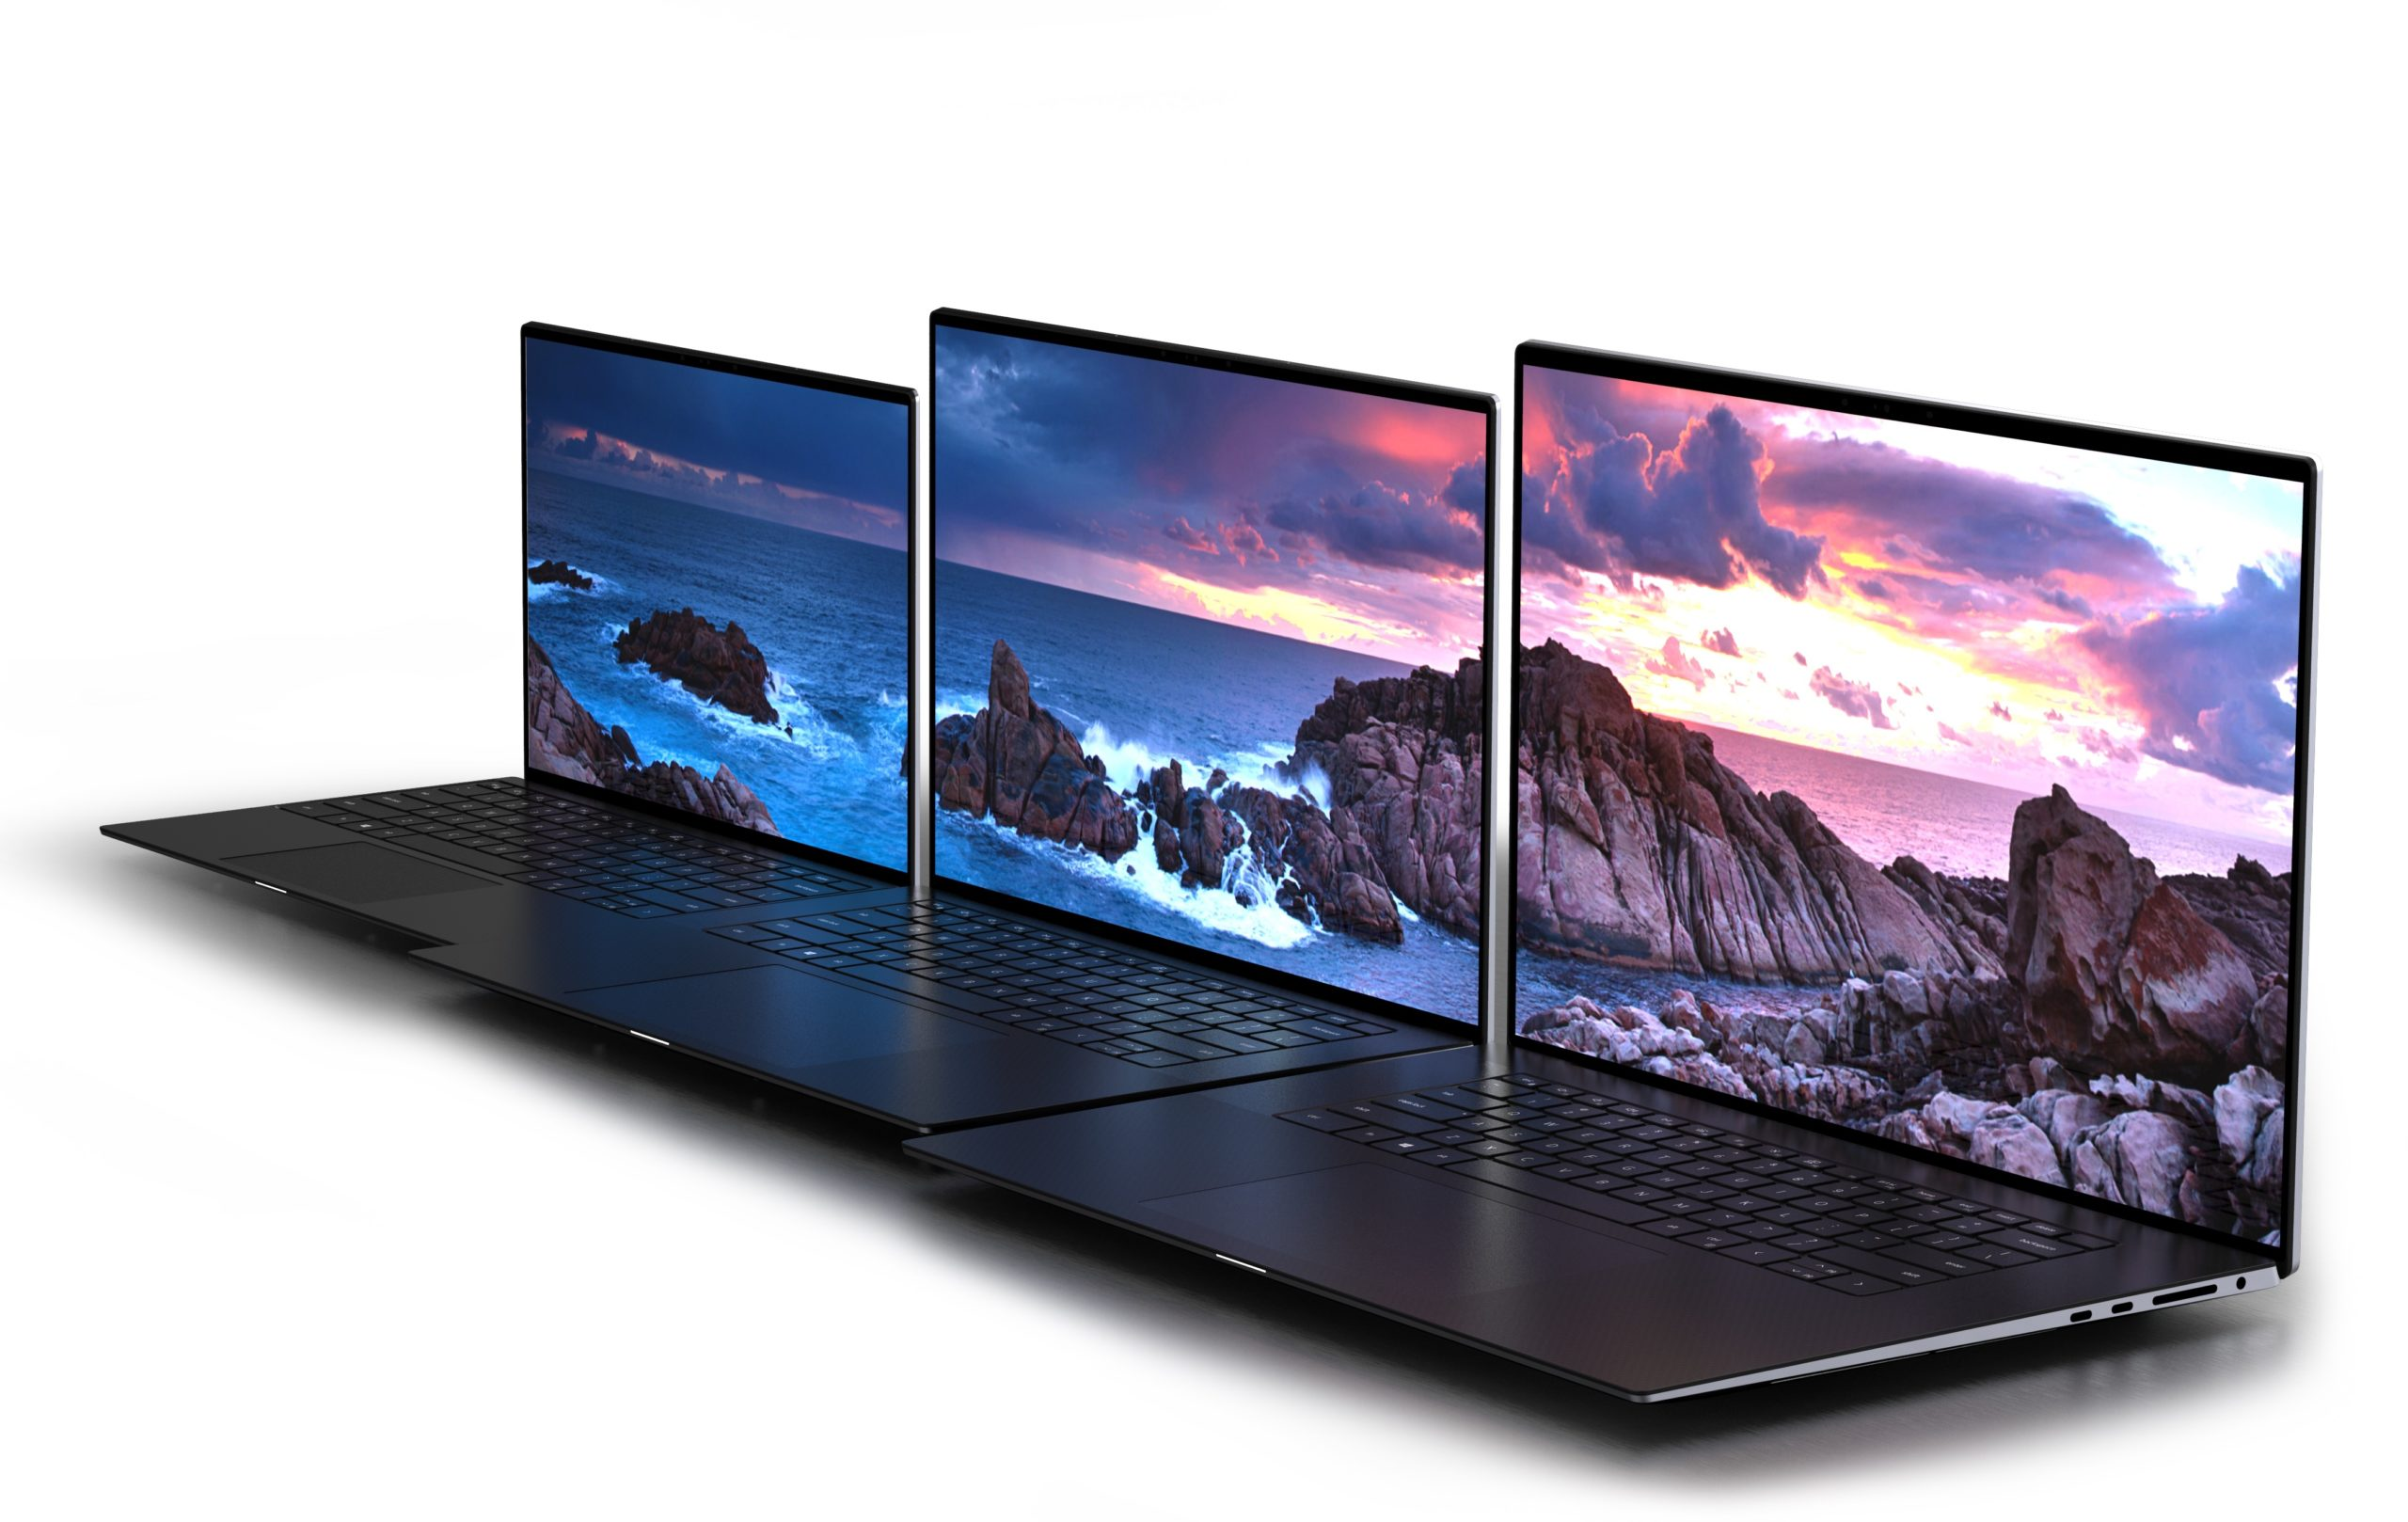 Updated Dell XPS 15 and 17 laptops are serious competition for the MacBook Pro 22